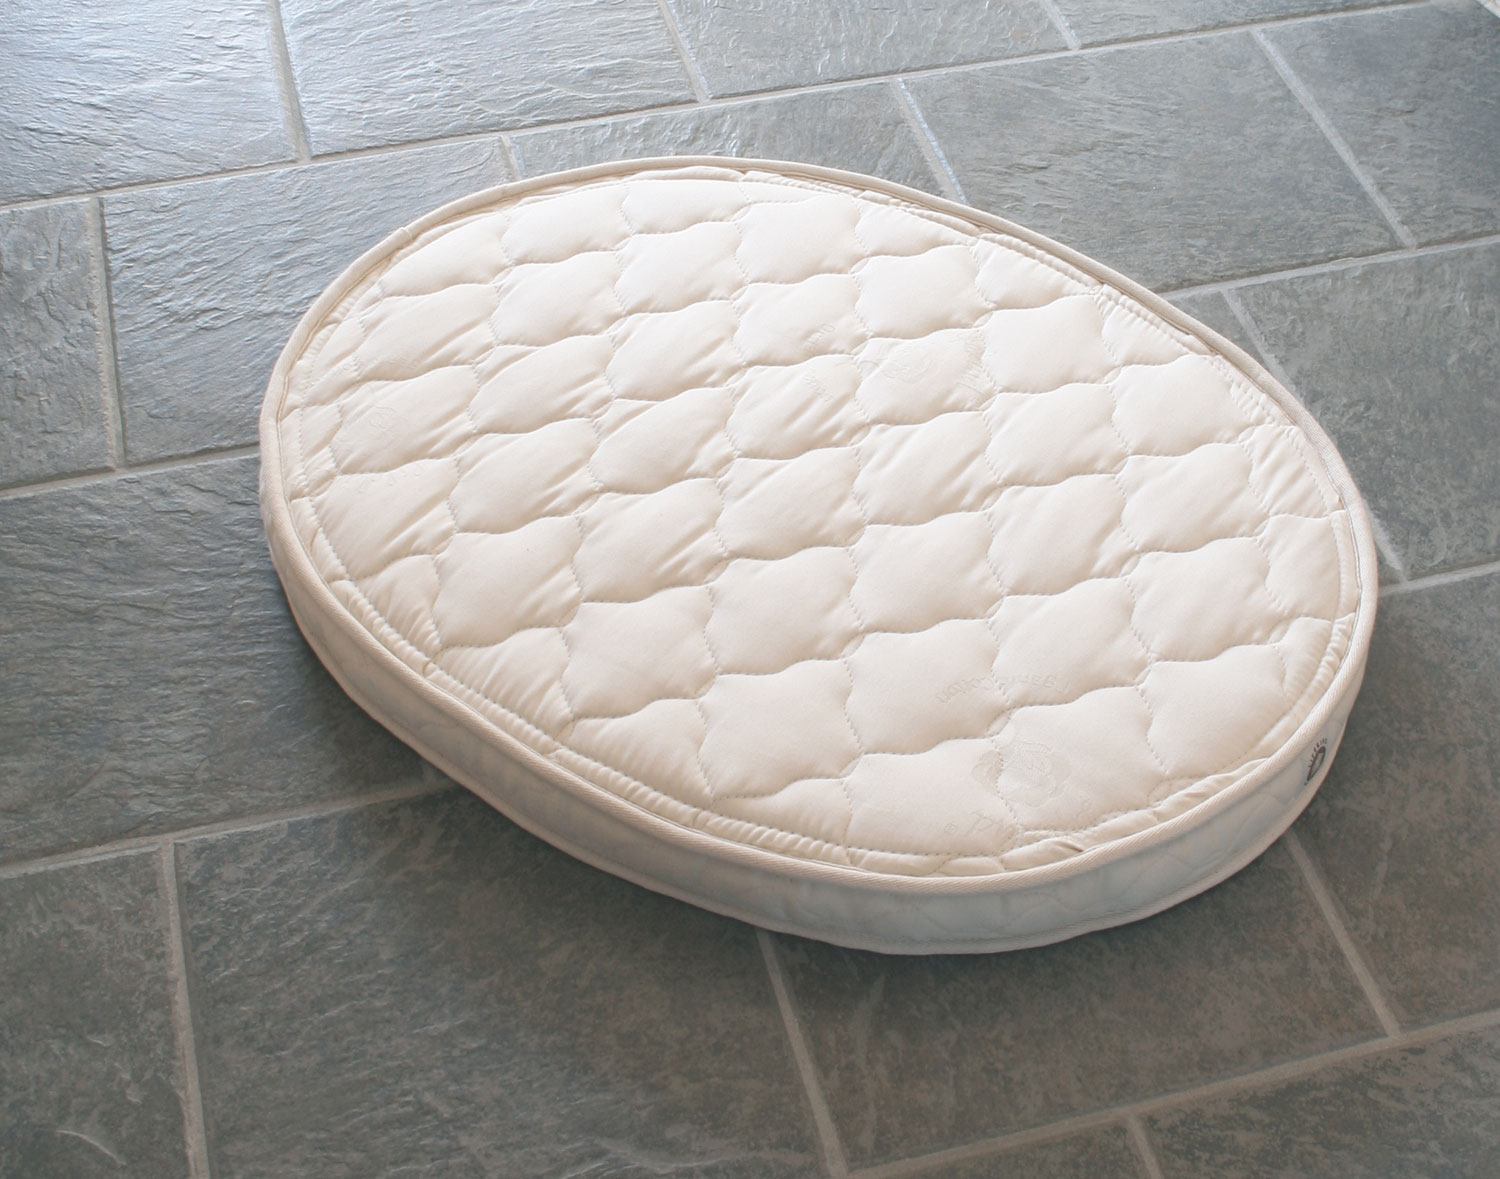 Rubber Mattress Oval Certified Organic Natural Rubber Crib Mattress